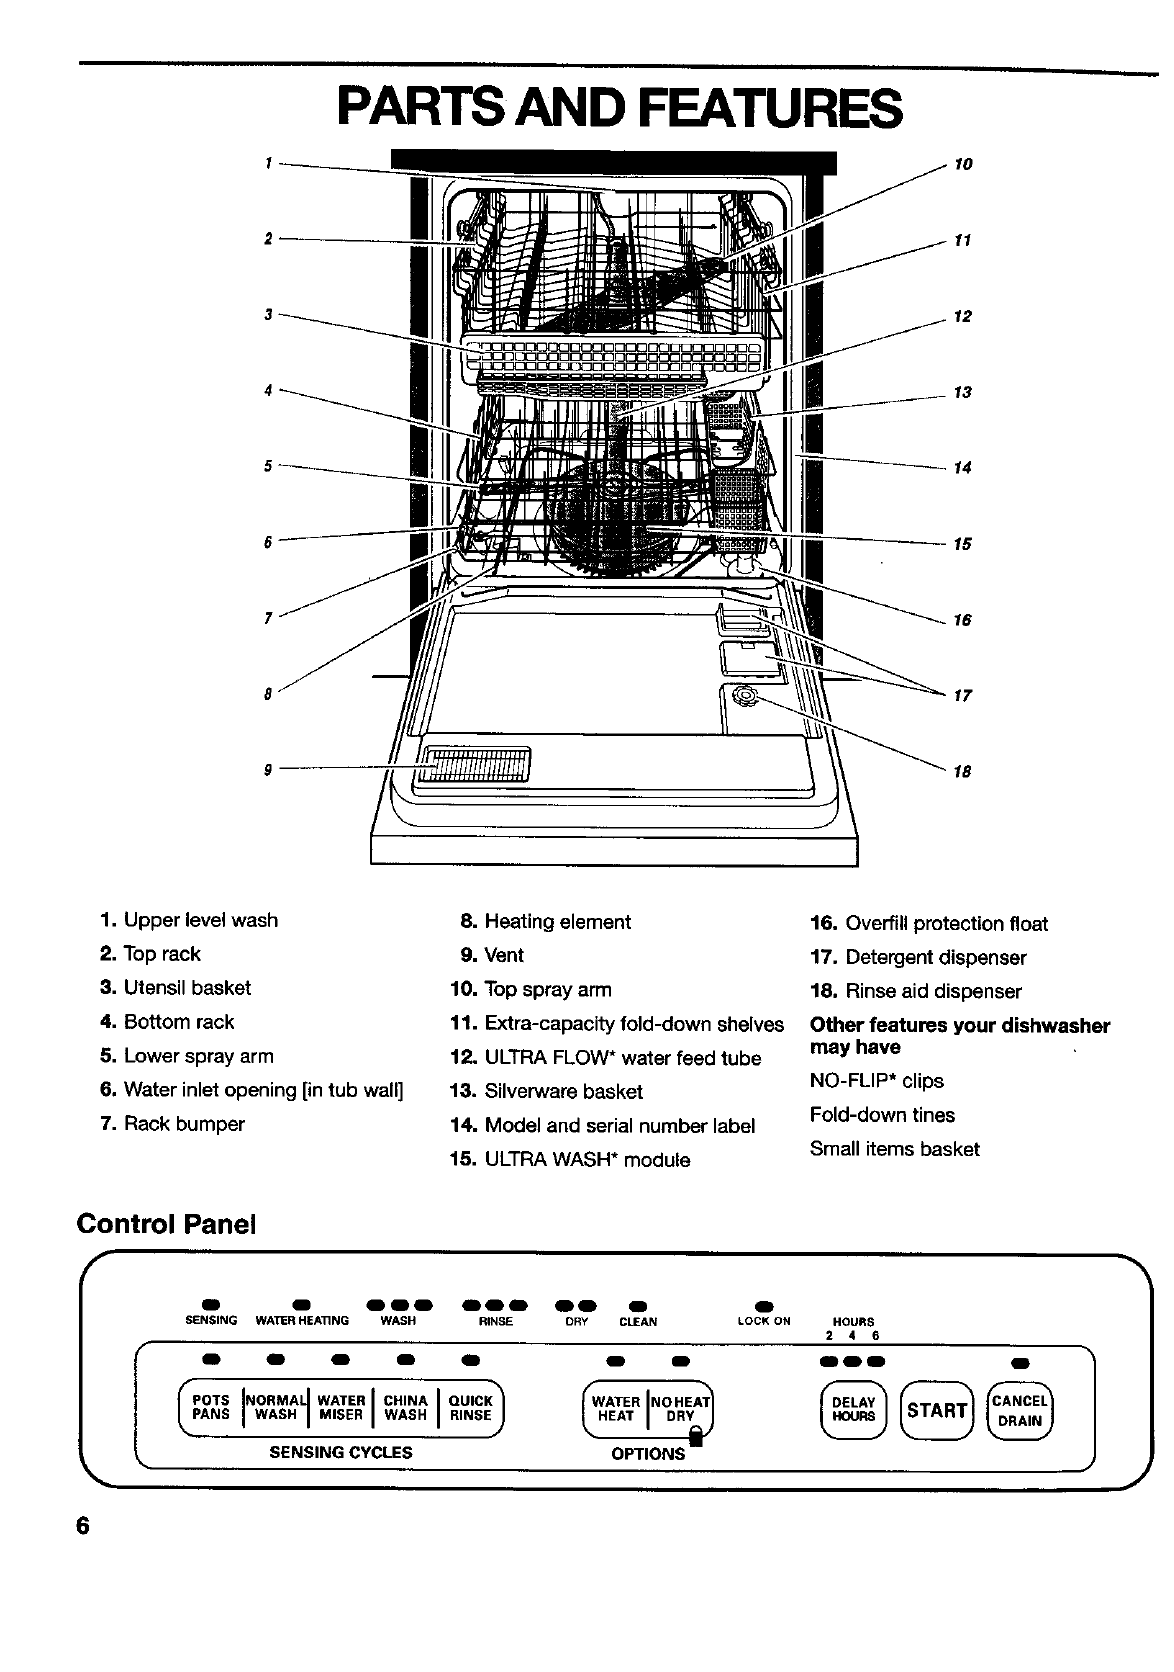 kenmore elite dishwasher 665 parts diagram 12v light switch wiring page 6 of 790 15777 user guide